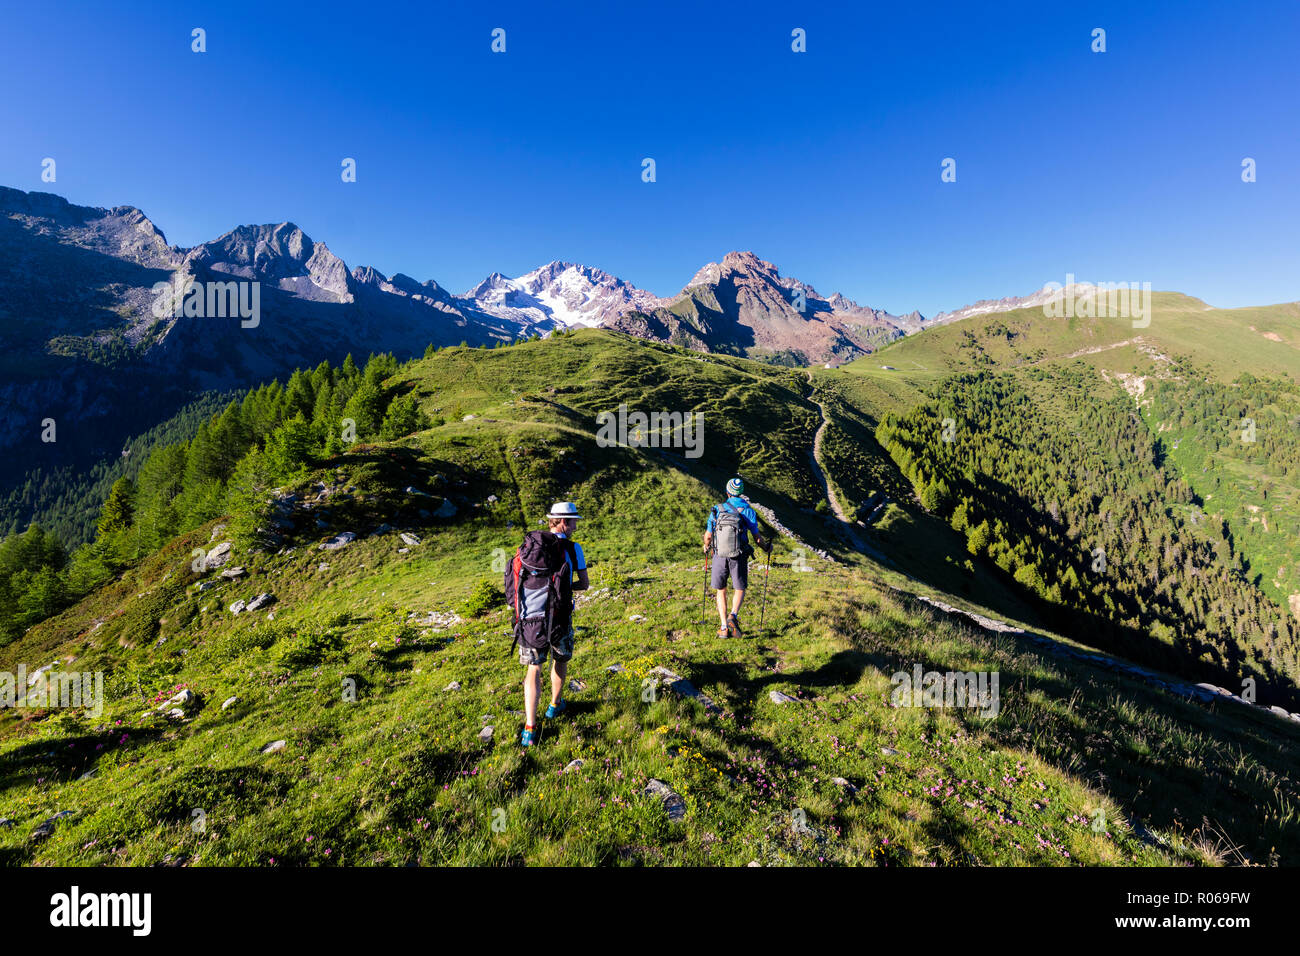 Hikers walk towards Monte Disgrazia from Scermendone Alp, Sondrio province, Valtellina, Rhaetian Alps, Lombardy, Italy, Europe Stock Photo